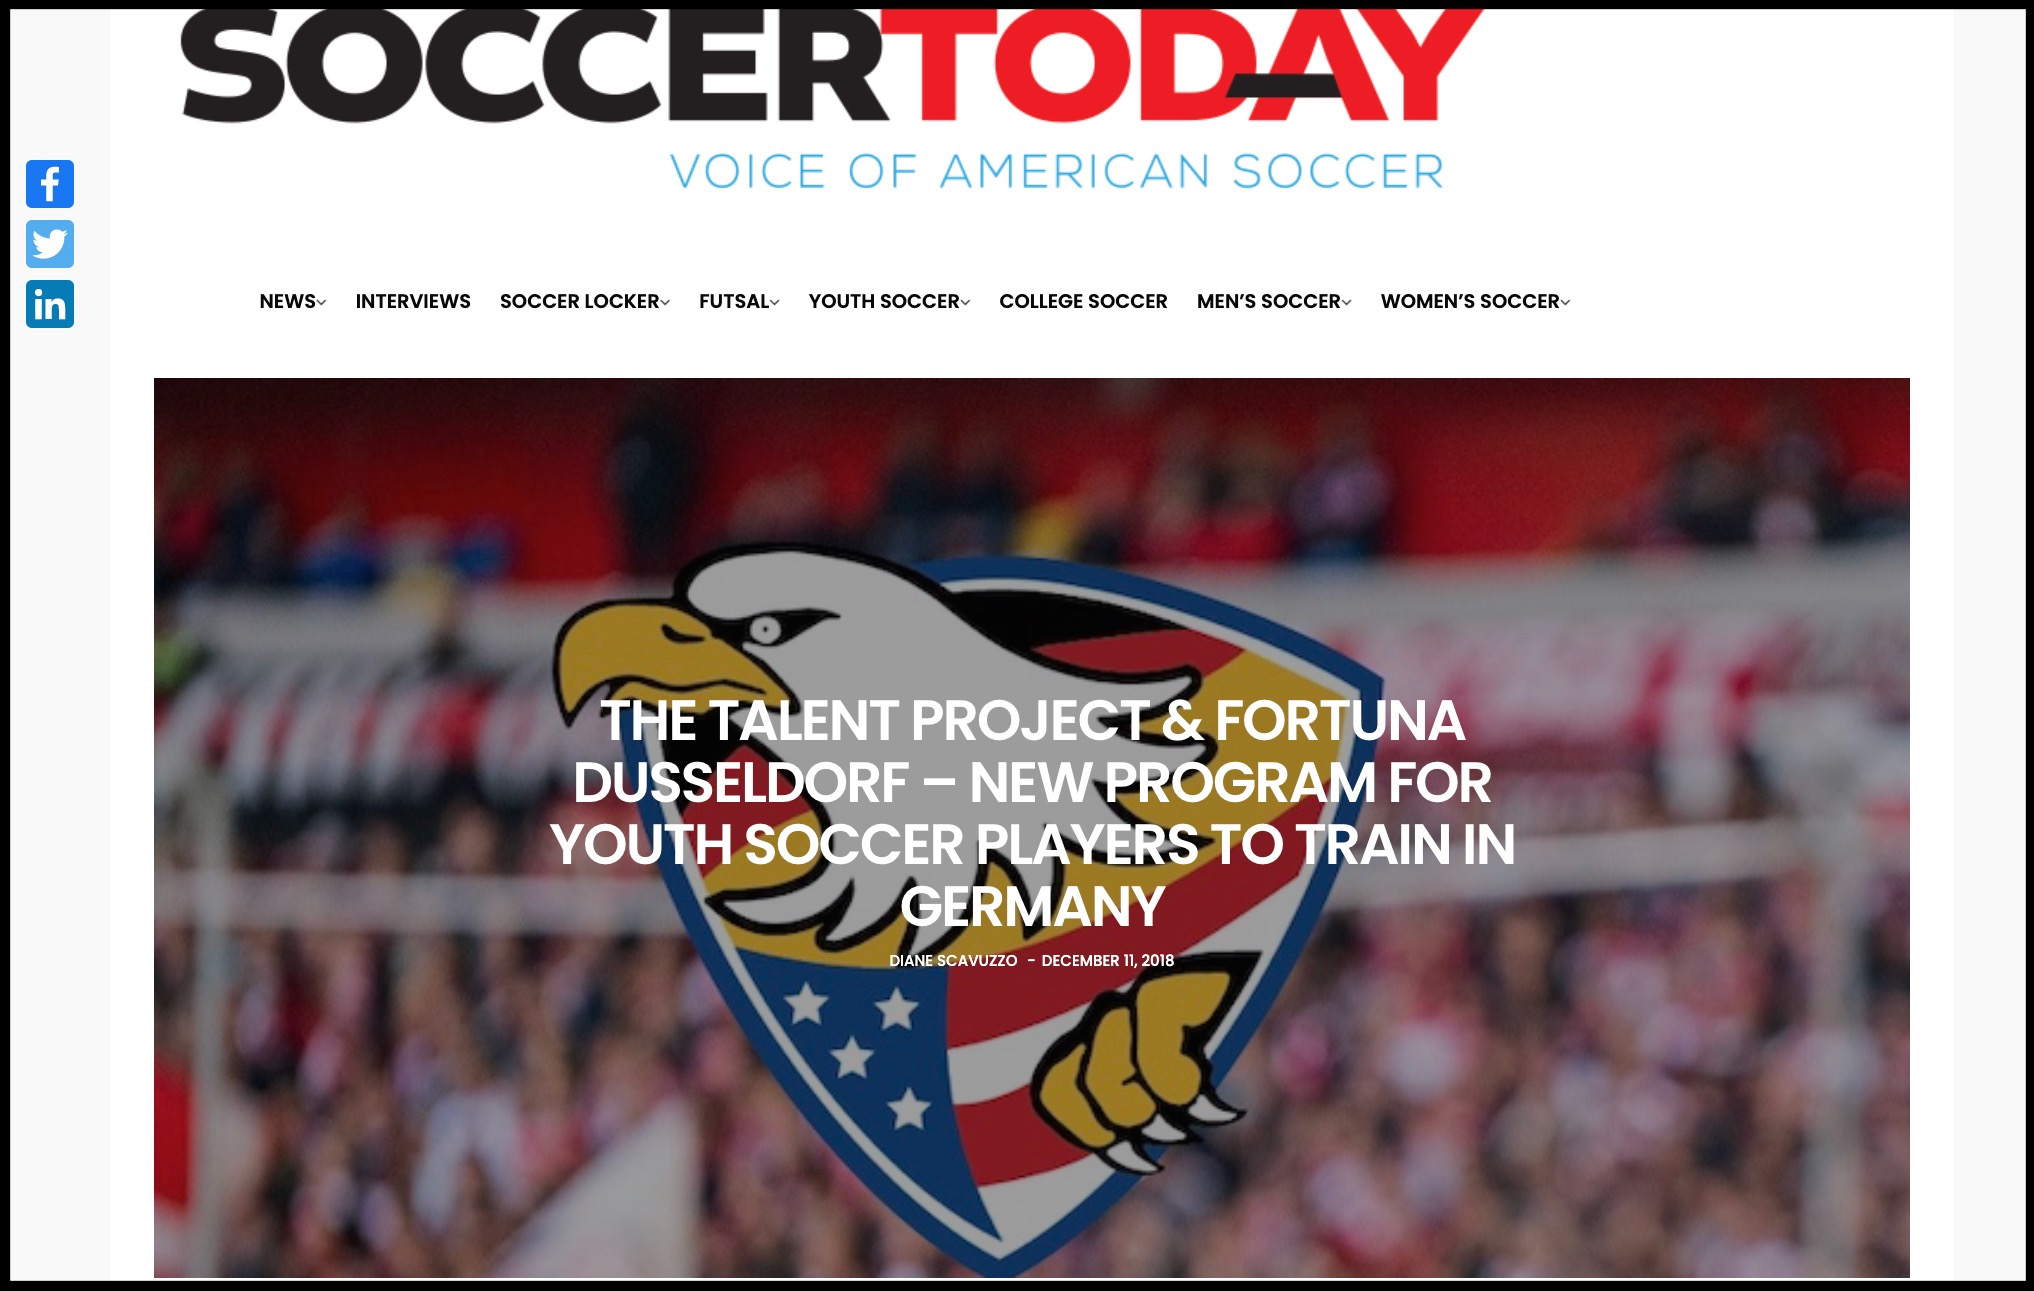 Soccer Today Article Dec 2018